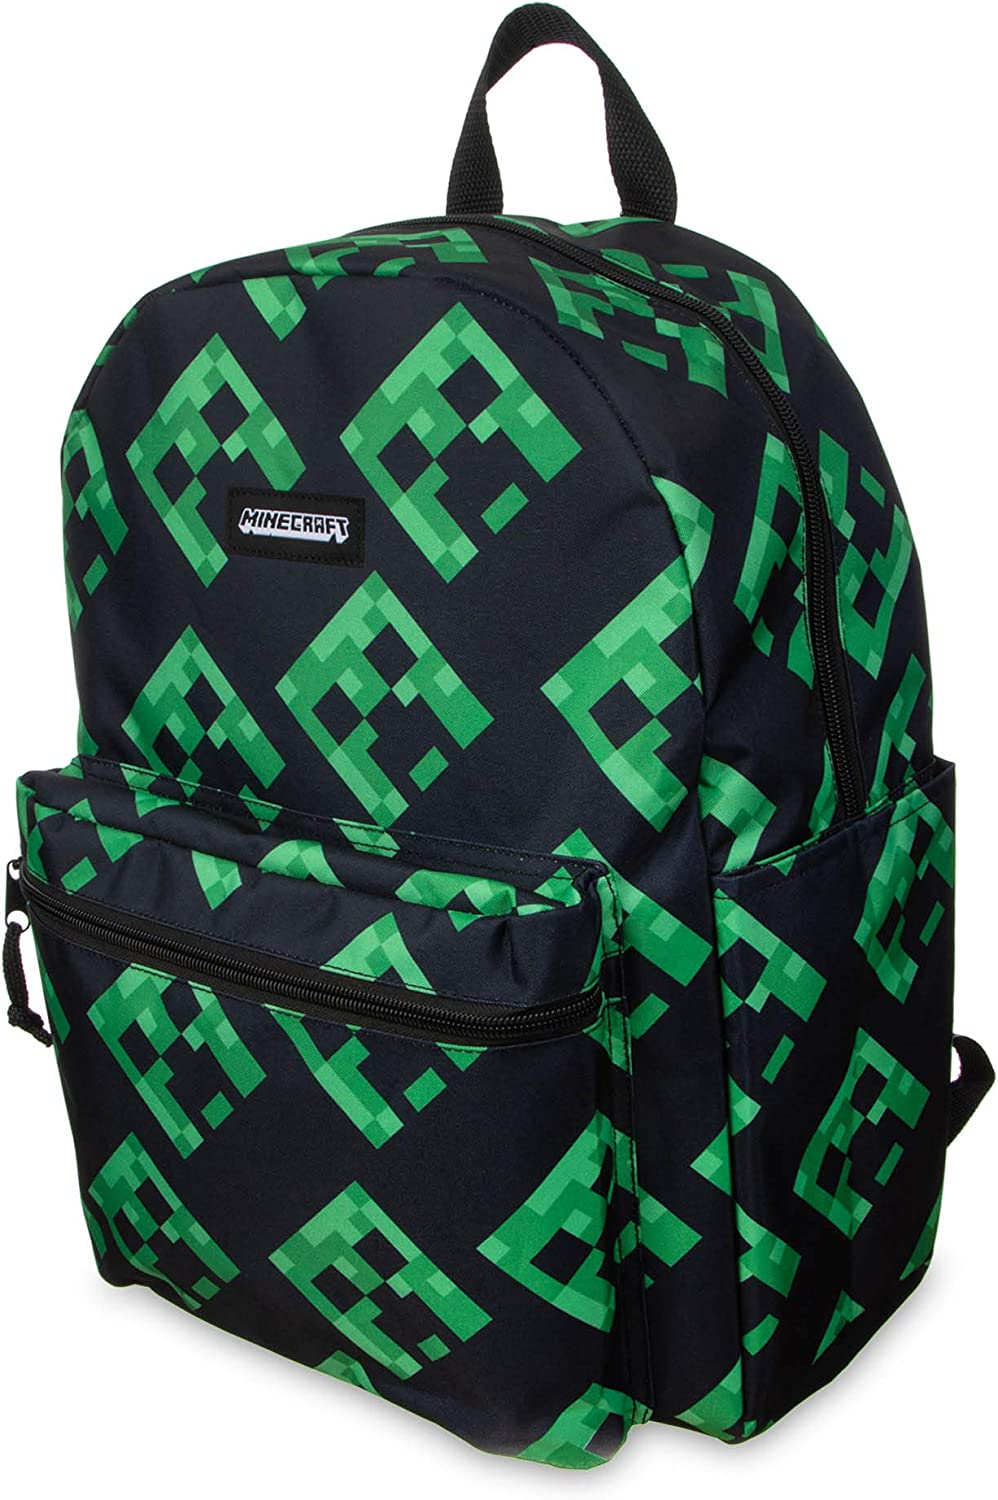 Minecraft Backpack 16 Book Bag for Kids Creepers All Over Print